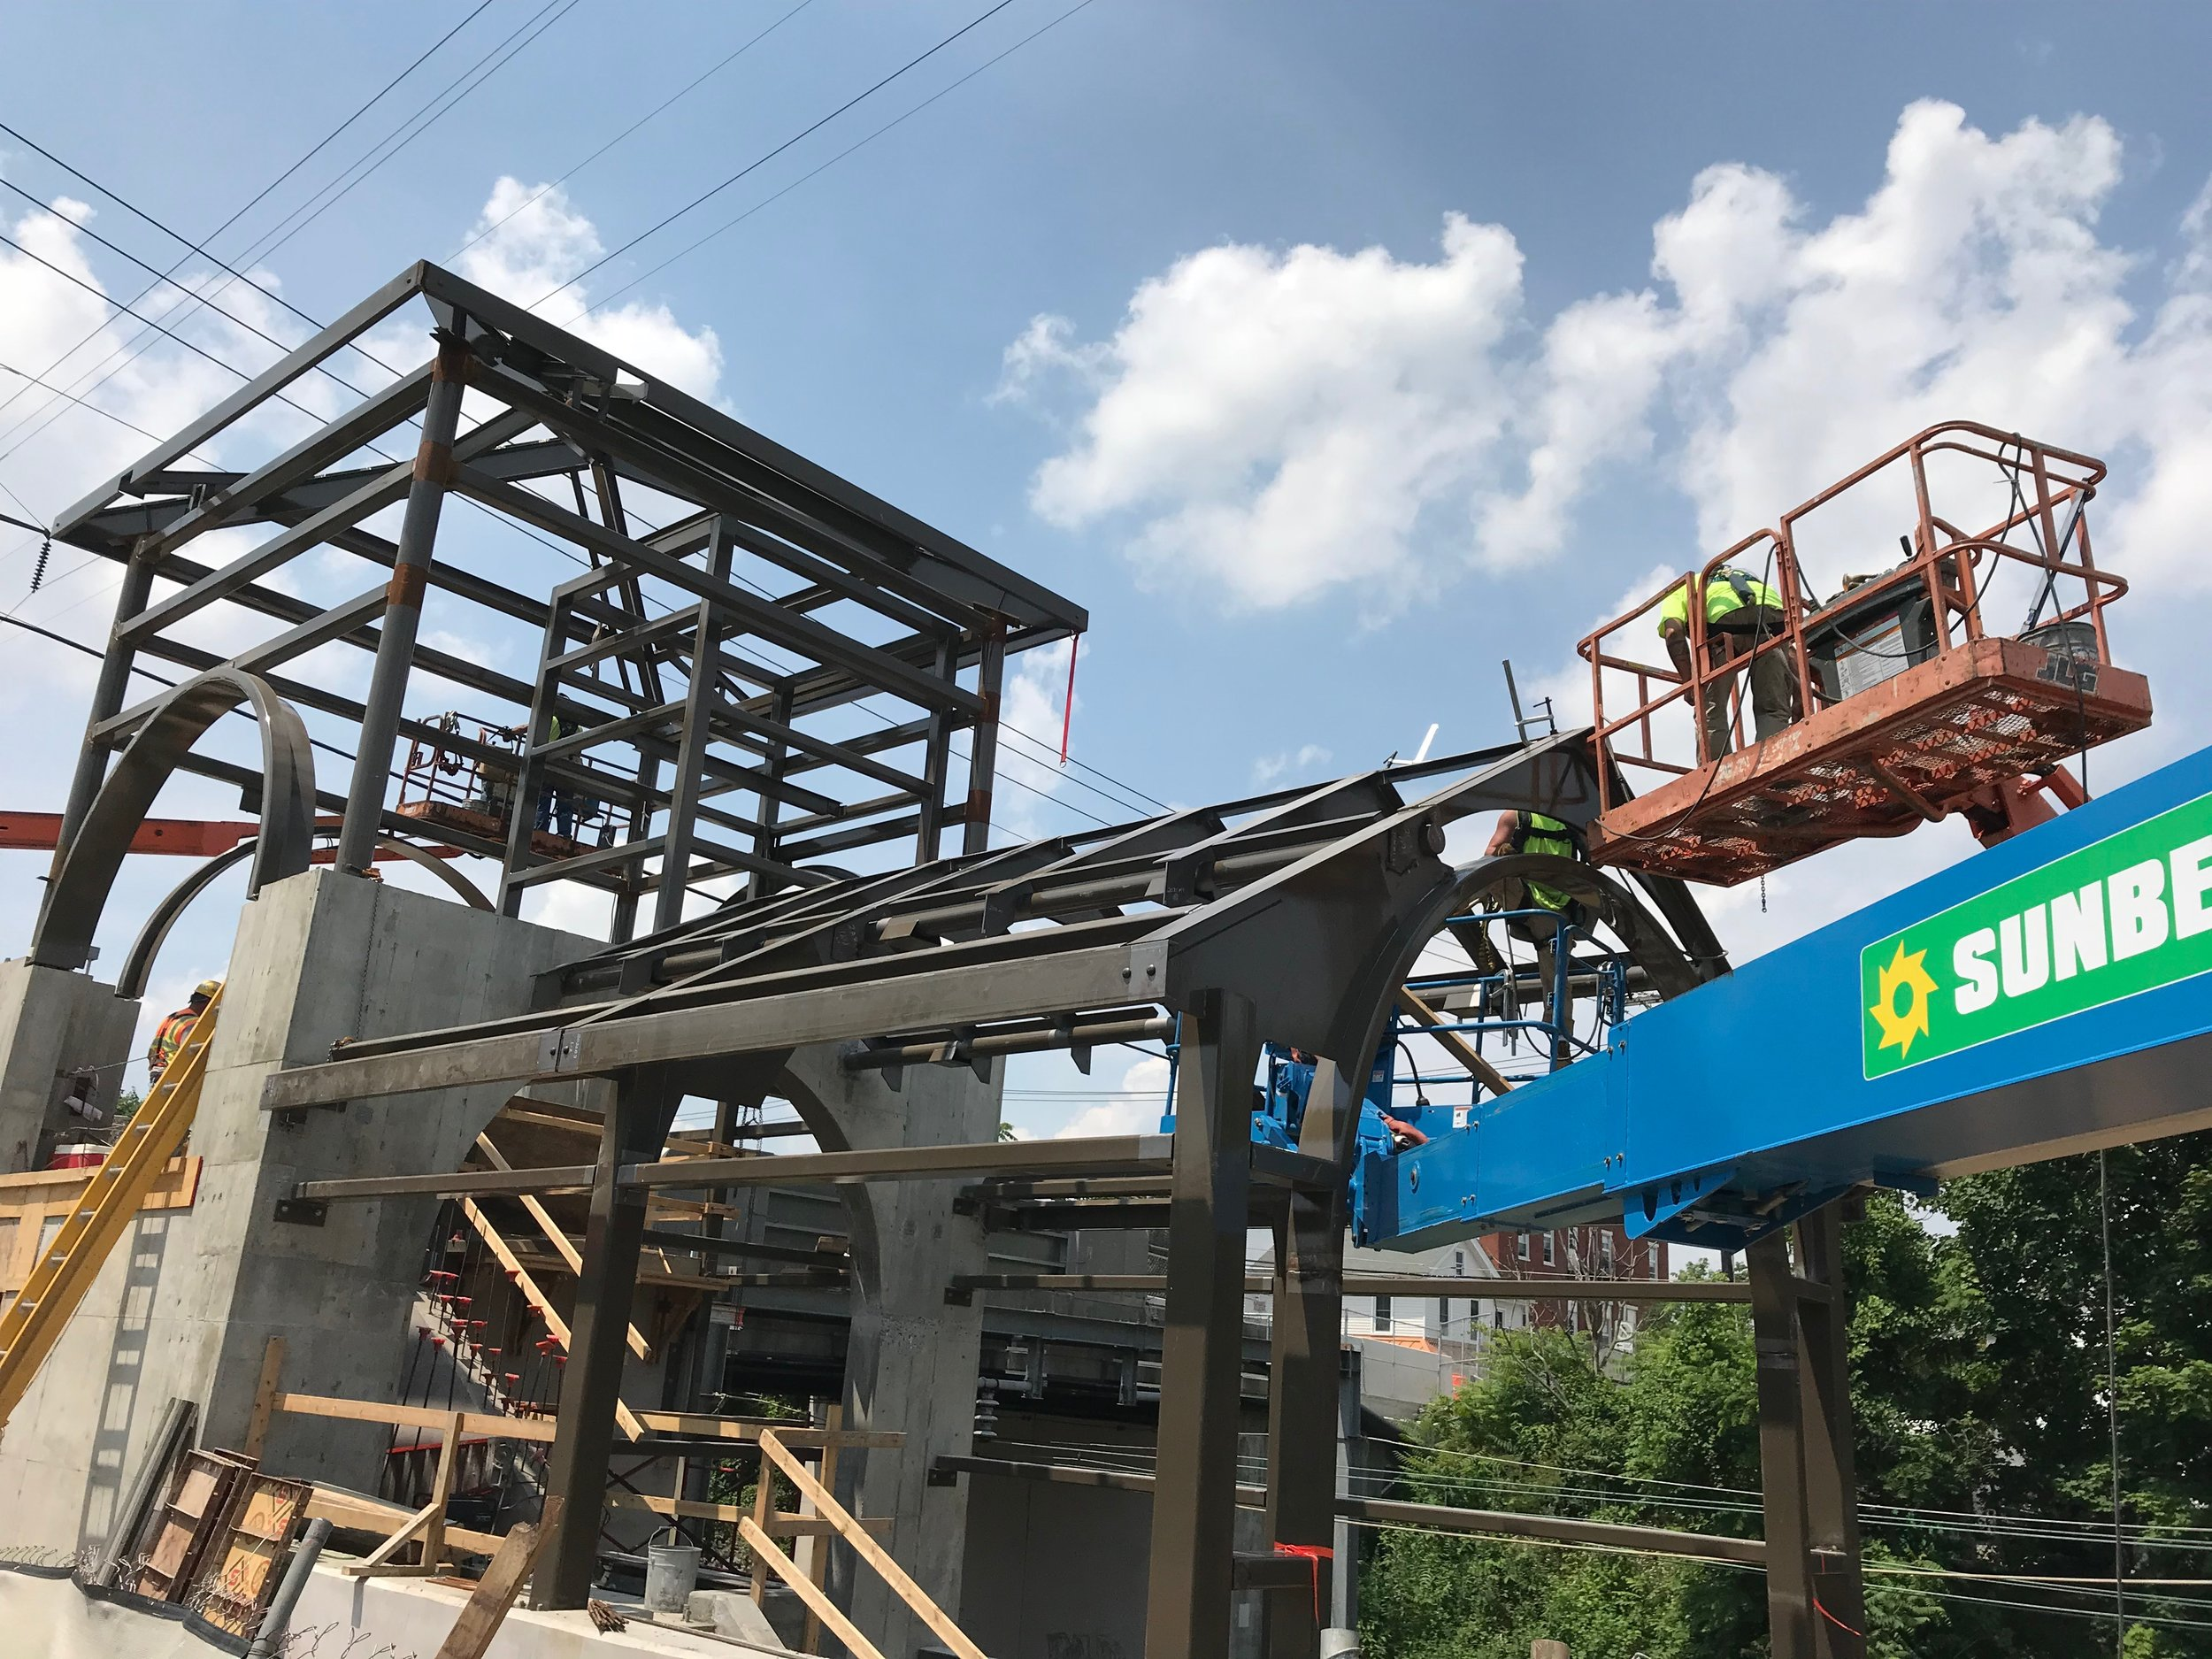 MOUNT JOY AMTRAK TRAIN STATION - Bass has fabricated and erected all strucutral steel and miscellaneous metals portions of this project including bridge and tower roofs, roof decking, canopy framing, elevator enclosure, and other miscellaneous pieces.